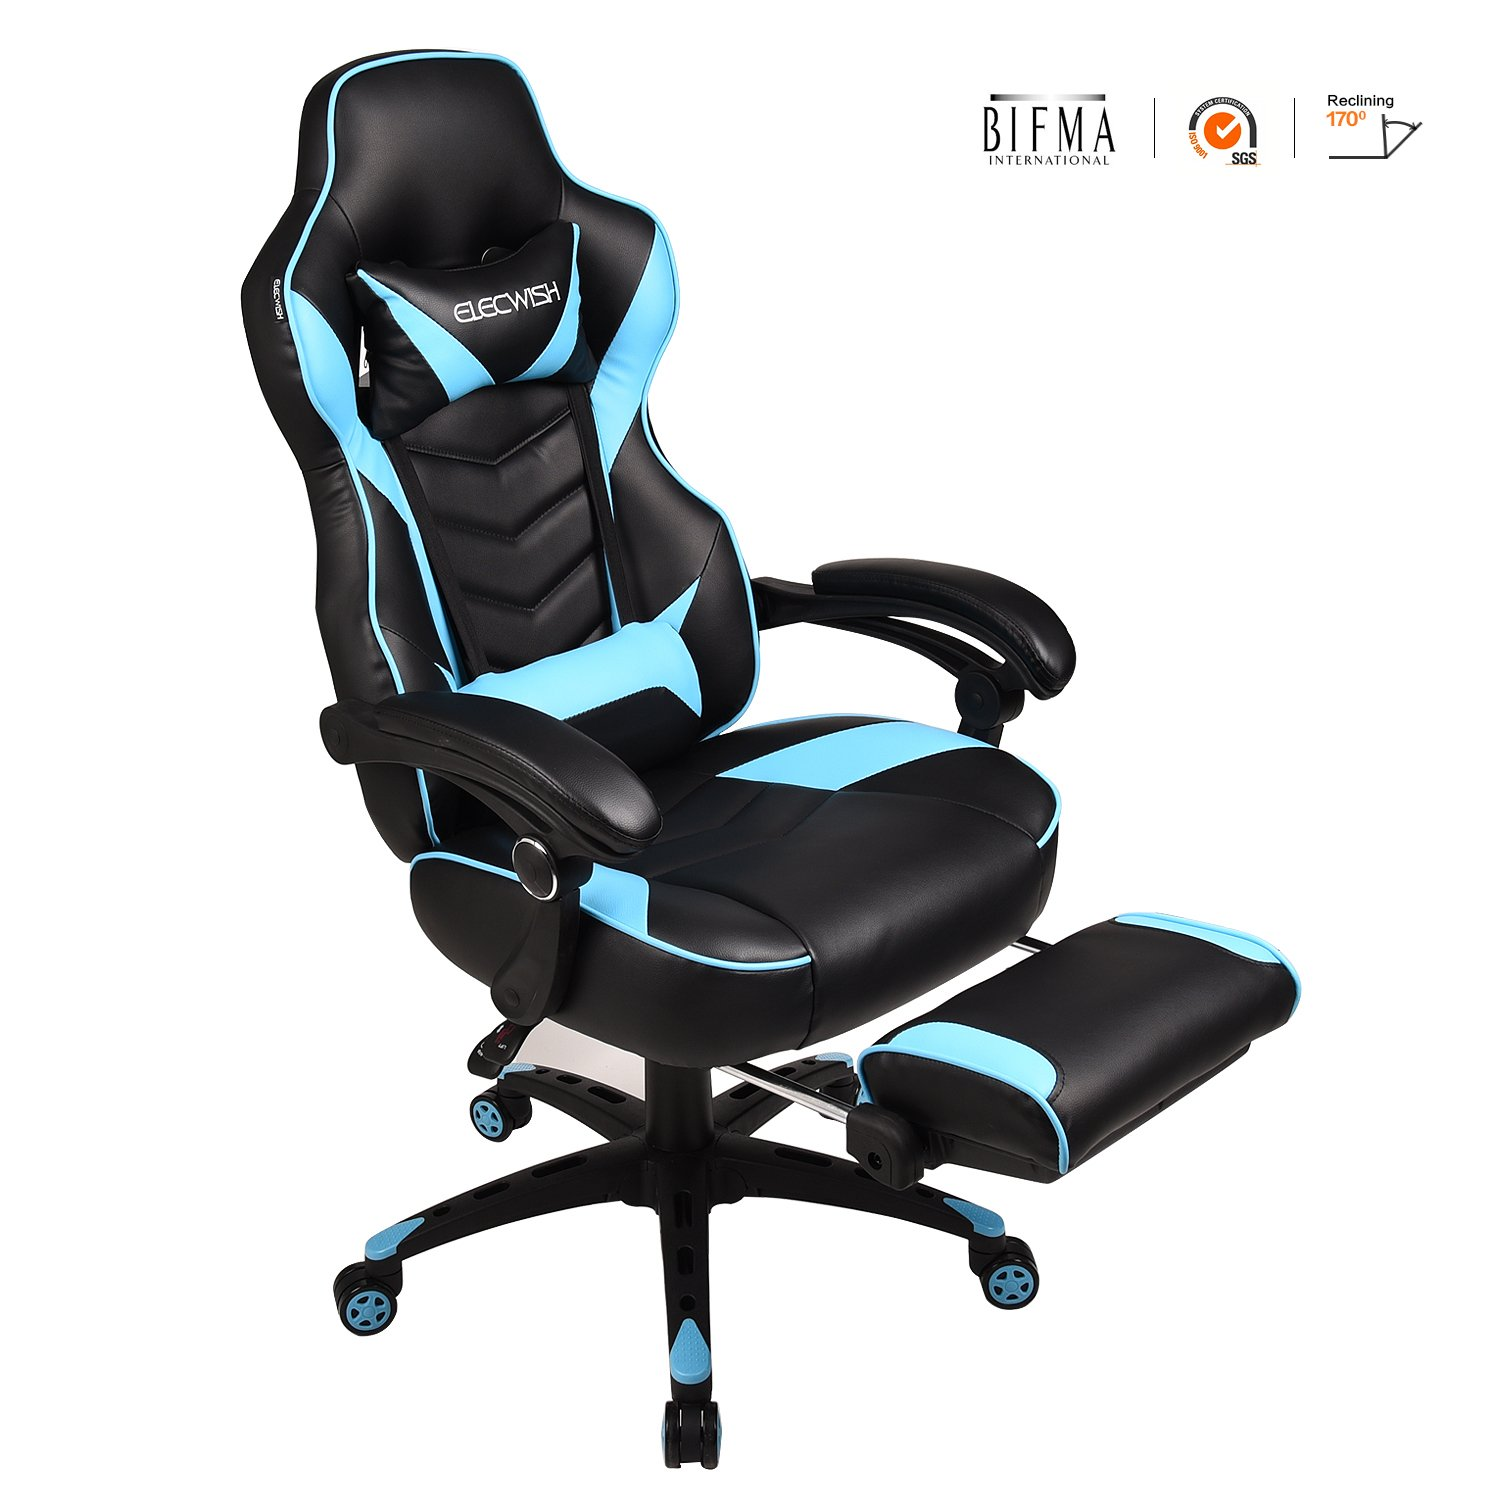 Sky bluee Ergonomic Computer Gaming Chair, Large Size PU Leather High Back Office Racing Chairs with Widen Thicken Seat and Retractable Footrest and Lumbar Support Video Game Chair 170 Degree Reclining (Grey)